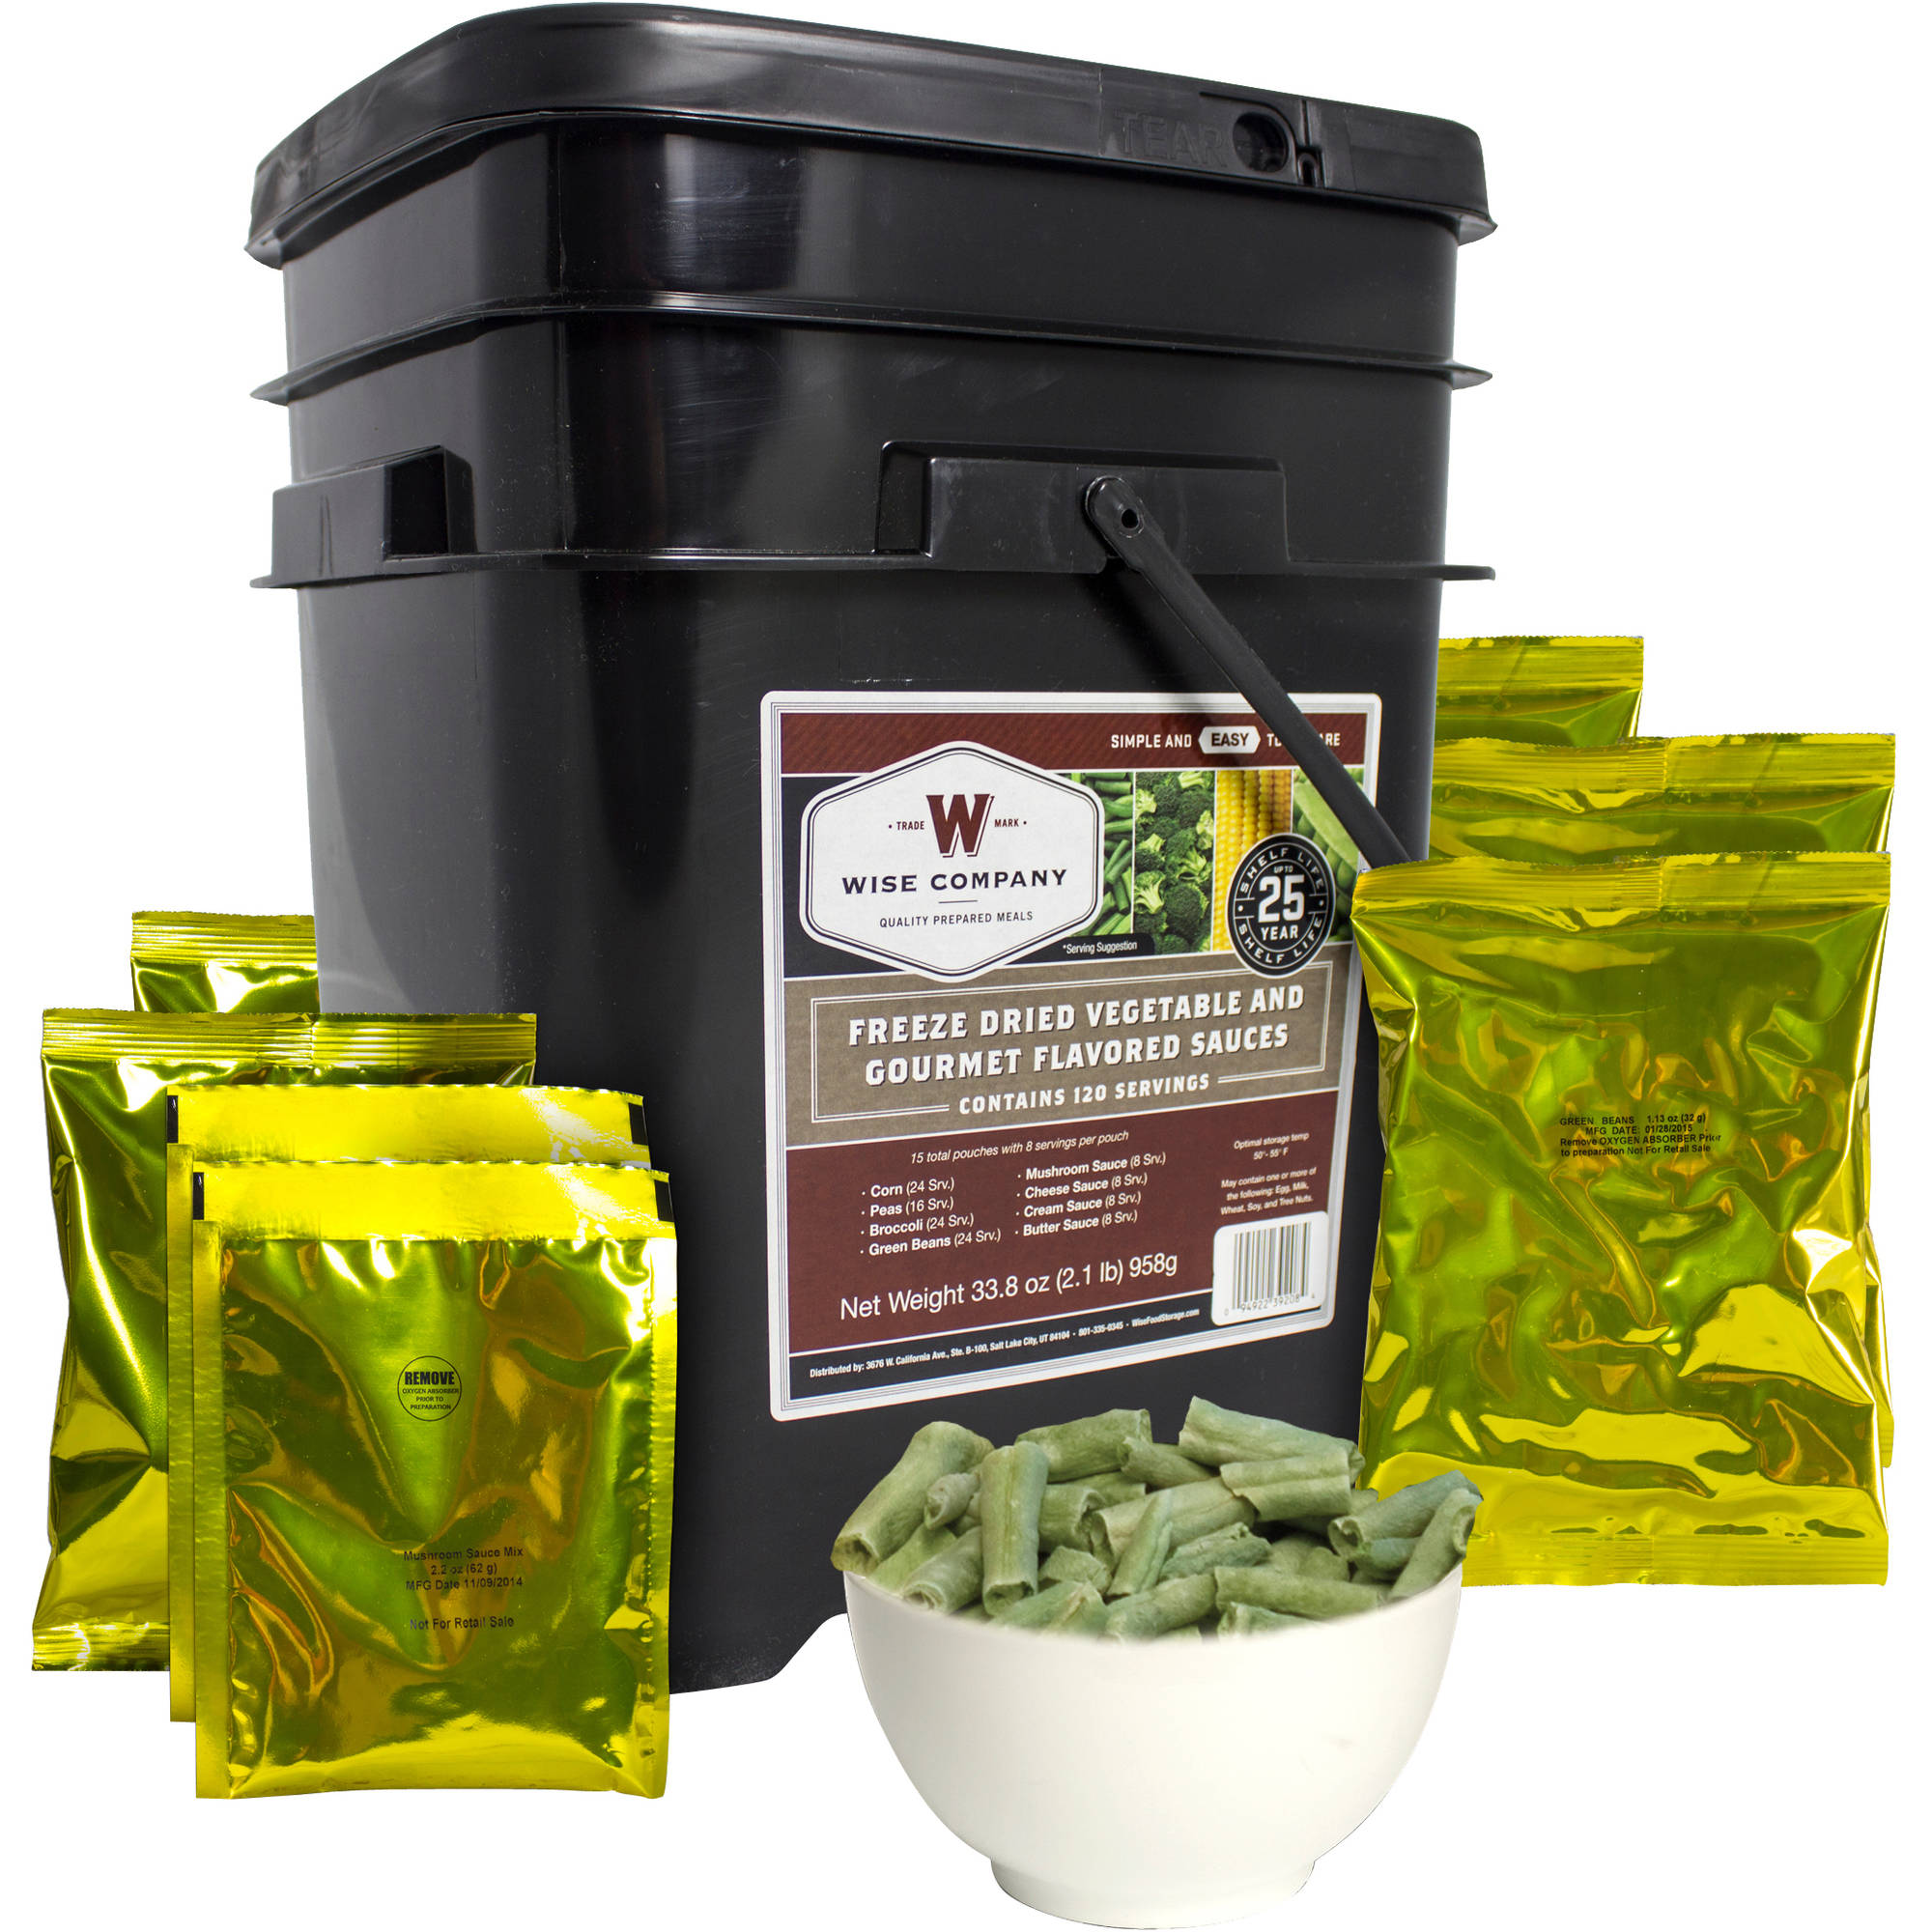 Wise Company Freeze Dried Vegetables and Gourmet Flavored Sauces Food Kit, 136 pc by Wise Company, Inc